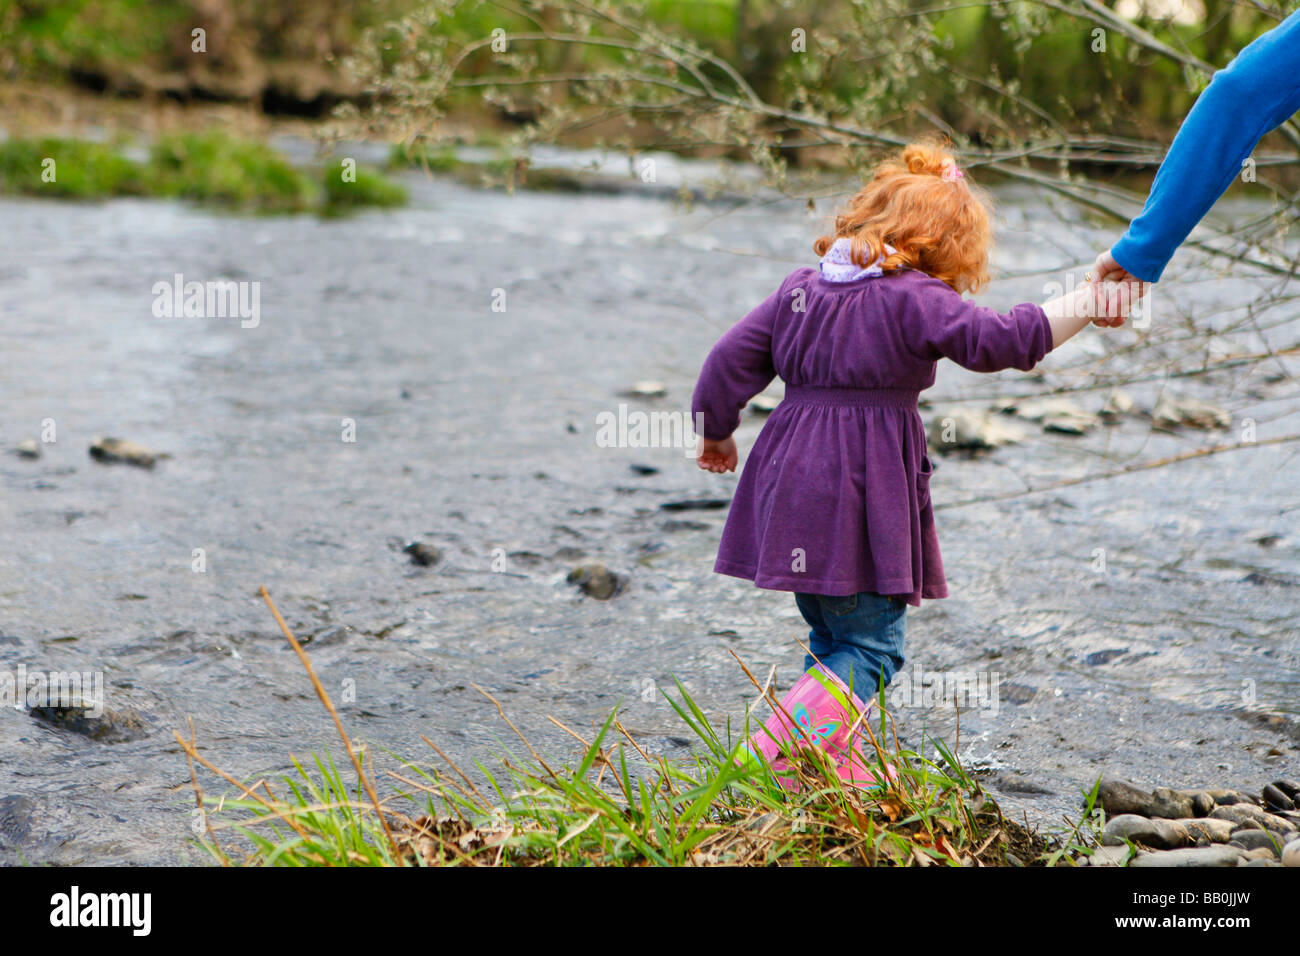 Little girl paddling in the river with red curly hair. - Stock Image